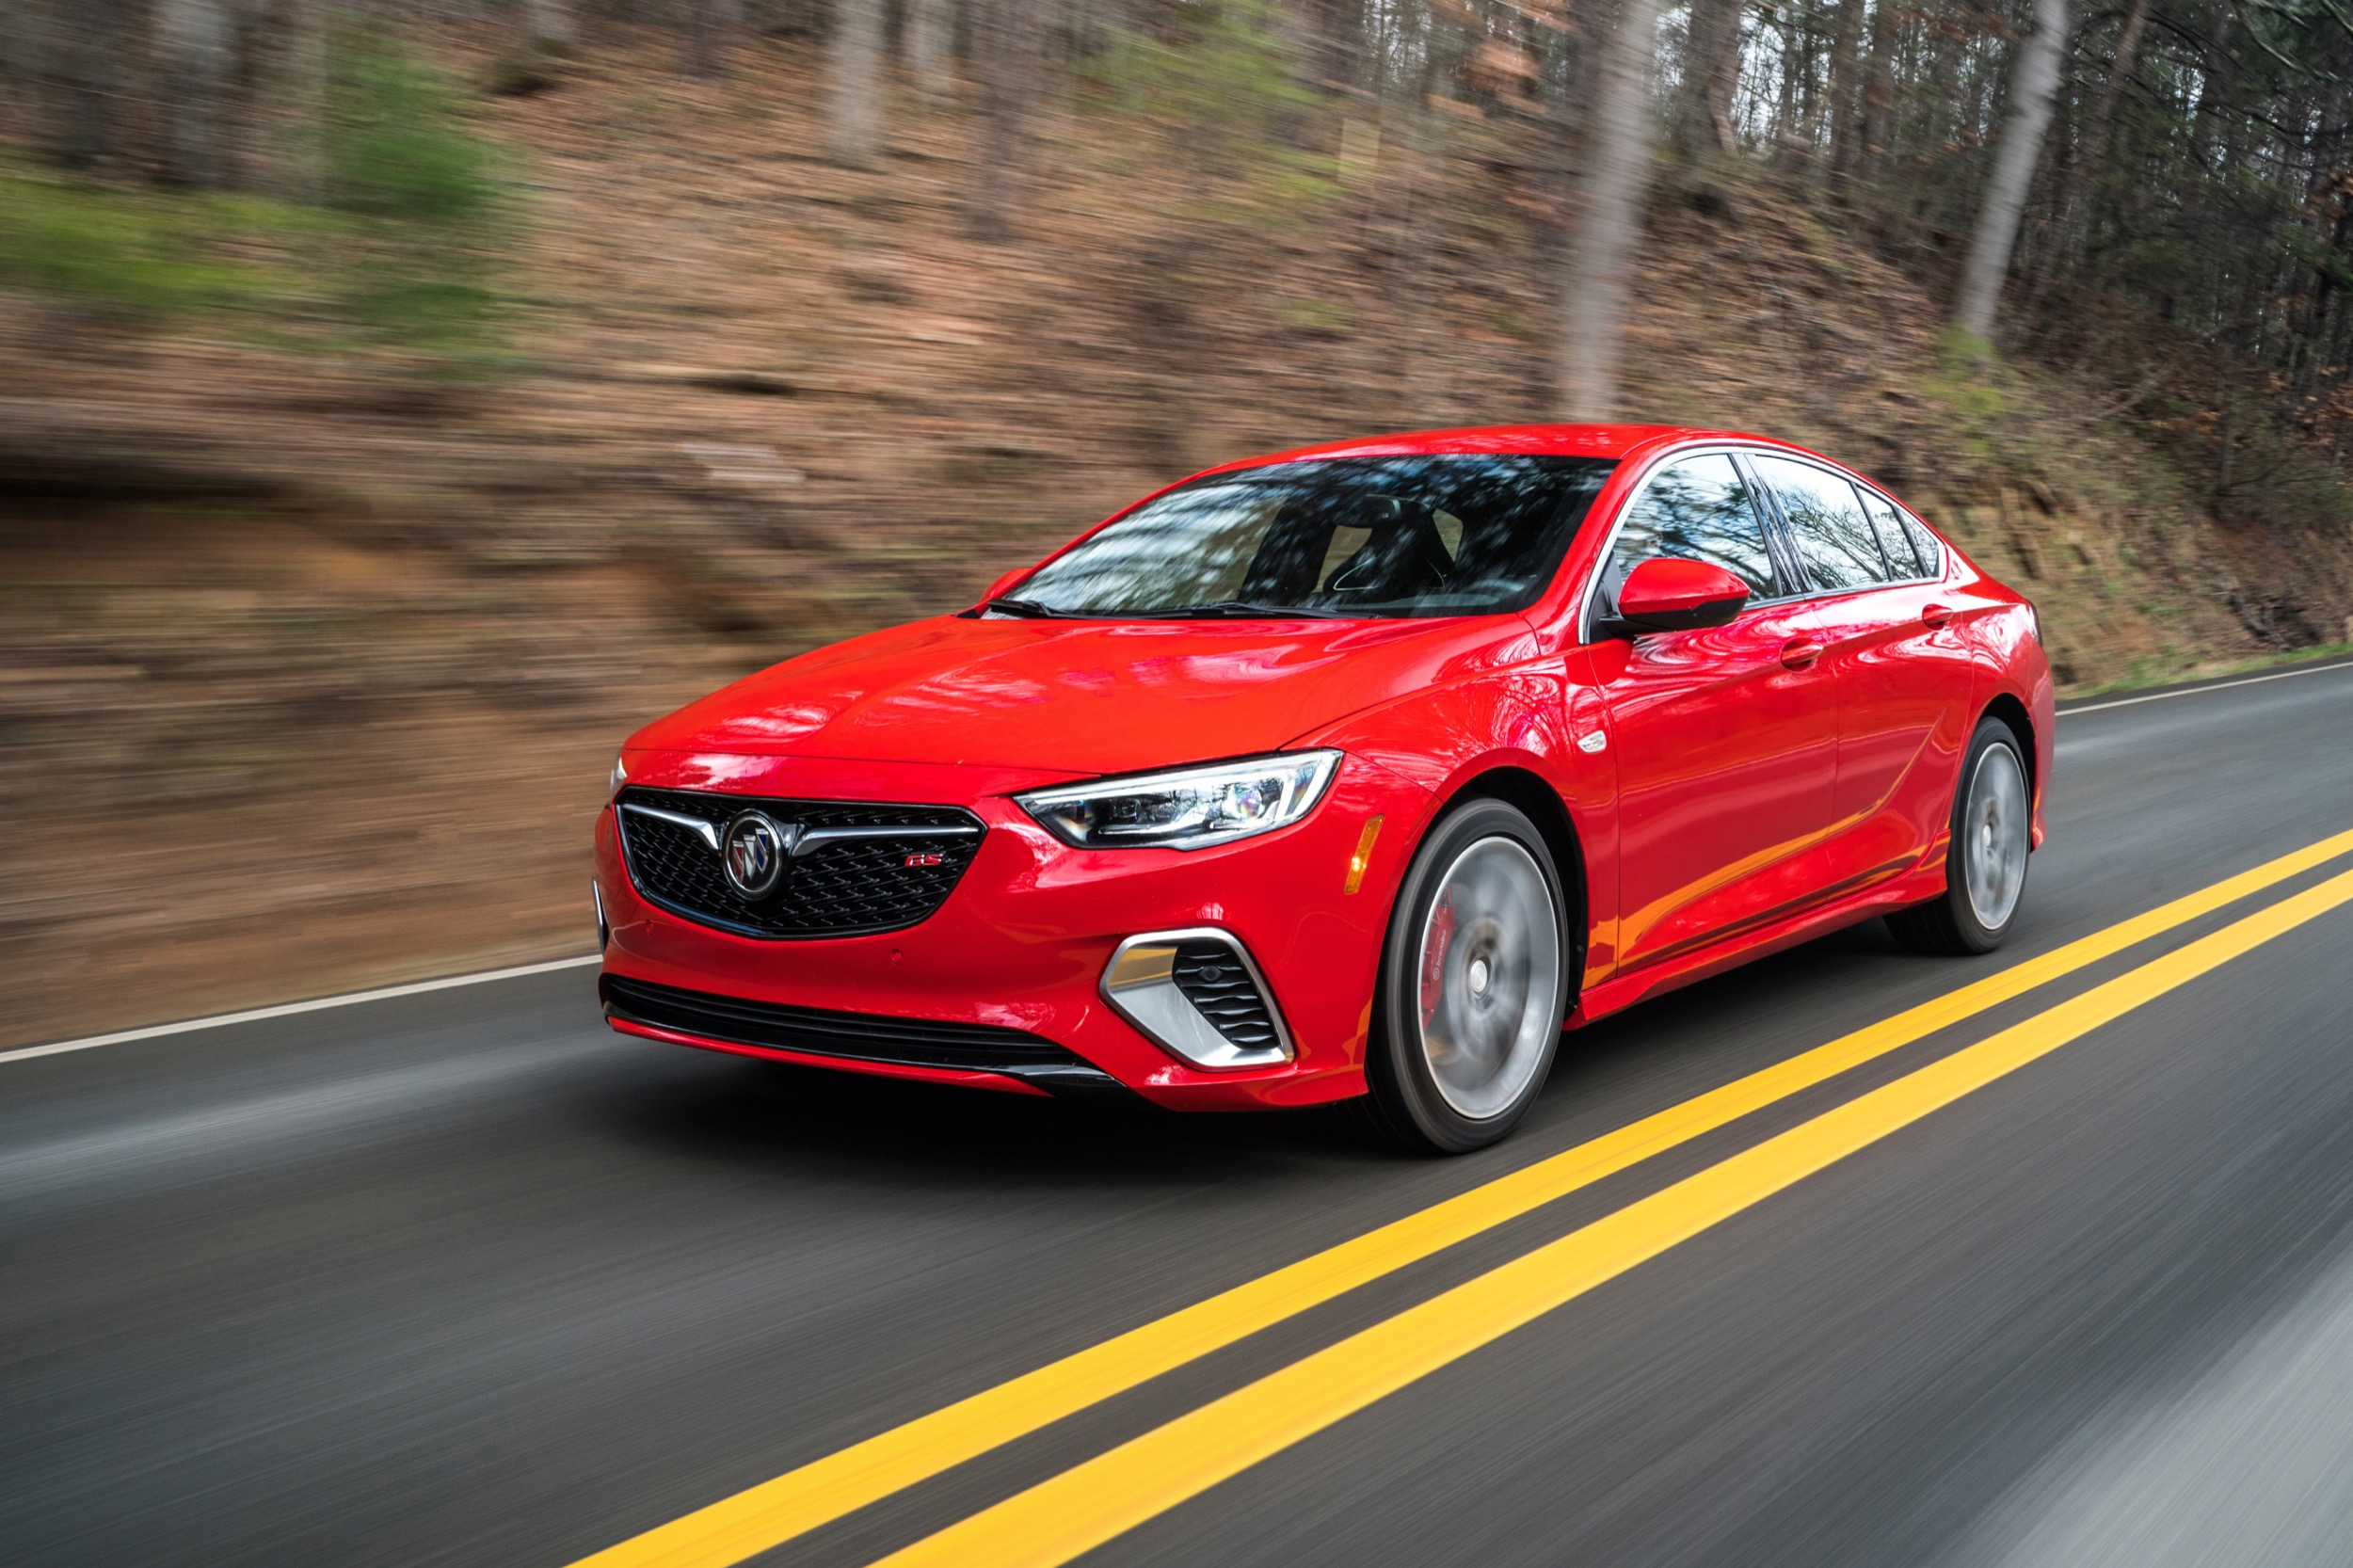 We Have Some Beef With This 2018 Buick Regal Gs Review | Gm 2022 Buick Regal Gs Price, Review, 0-60